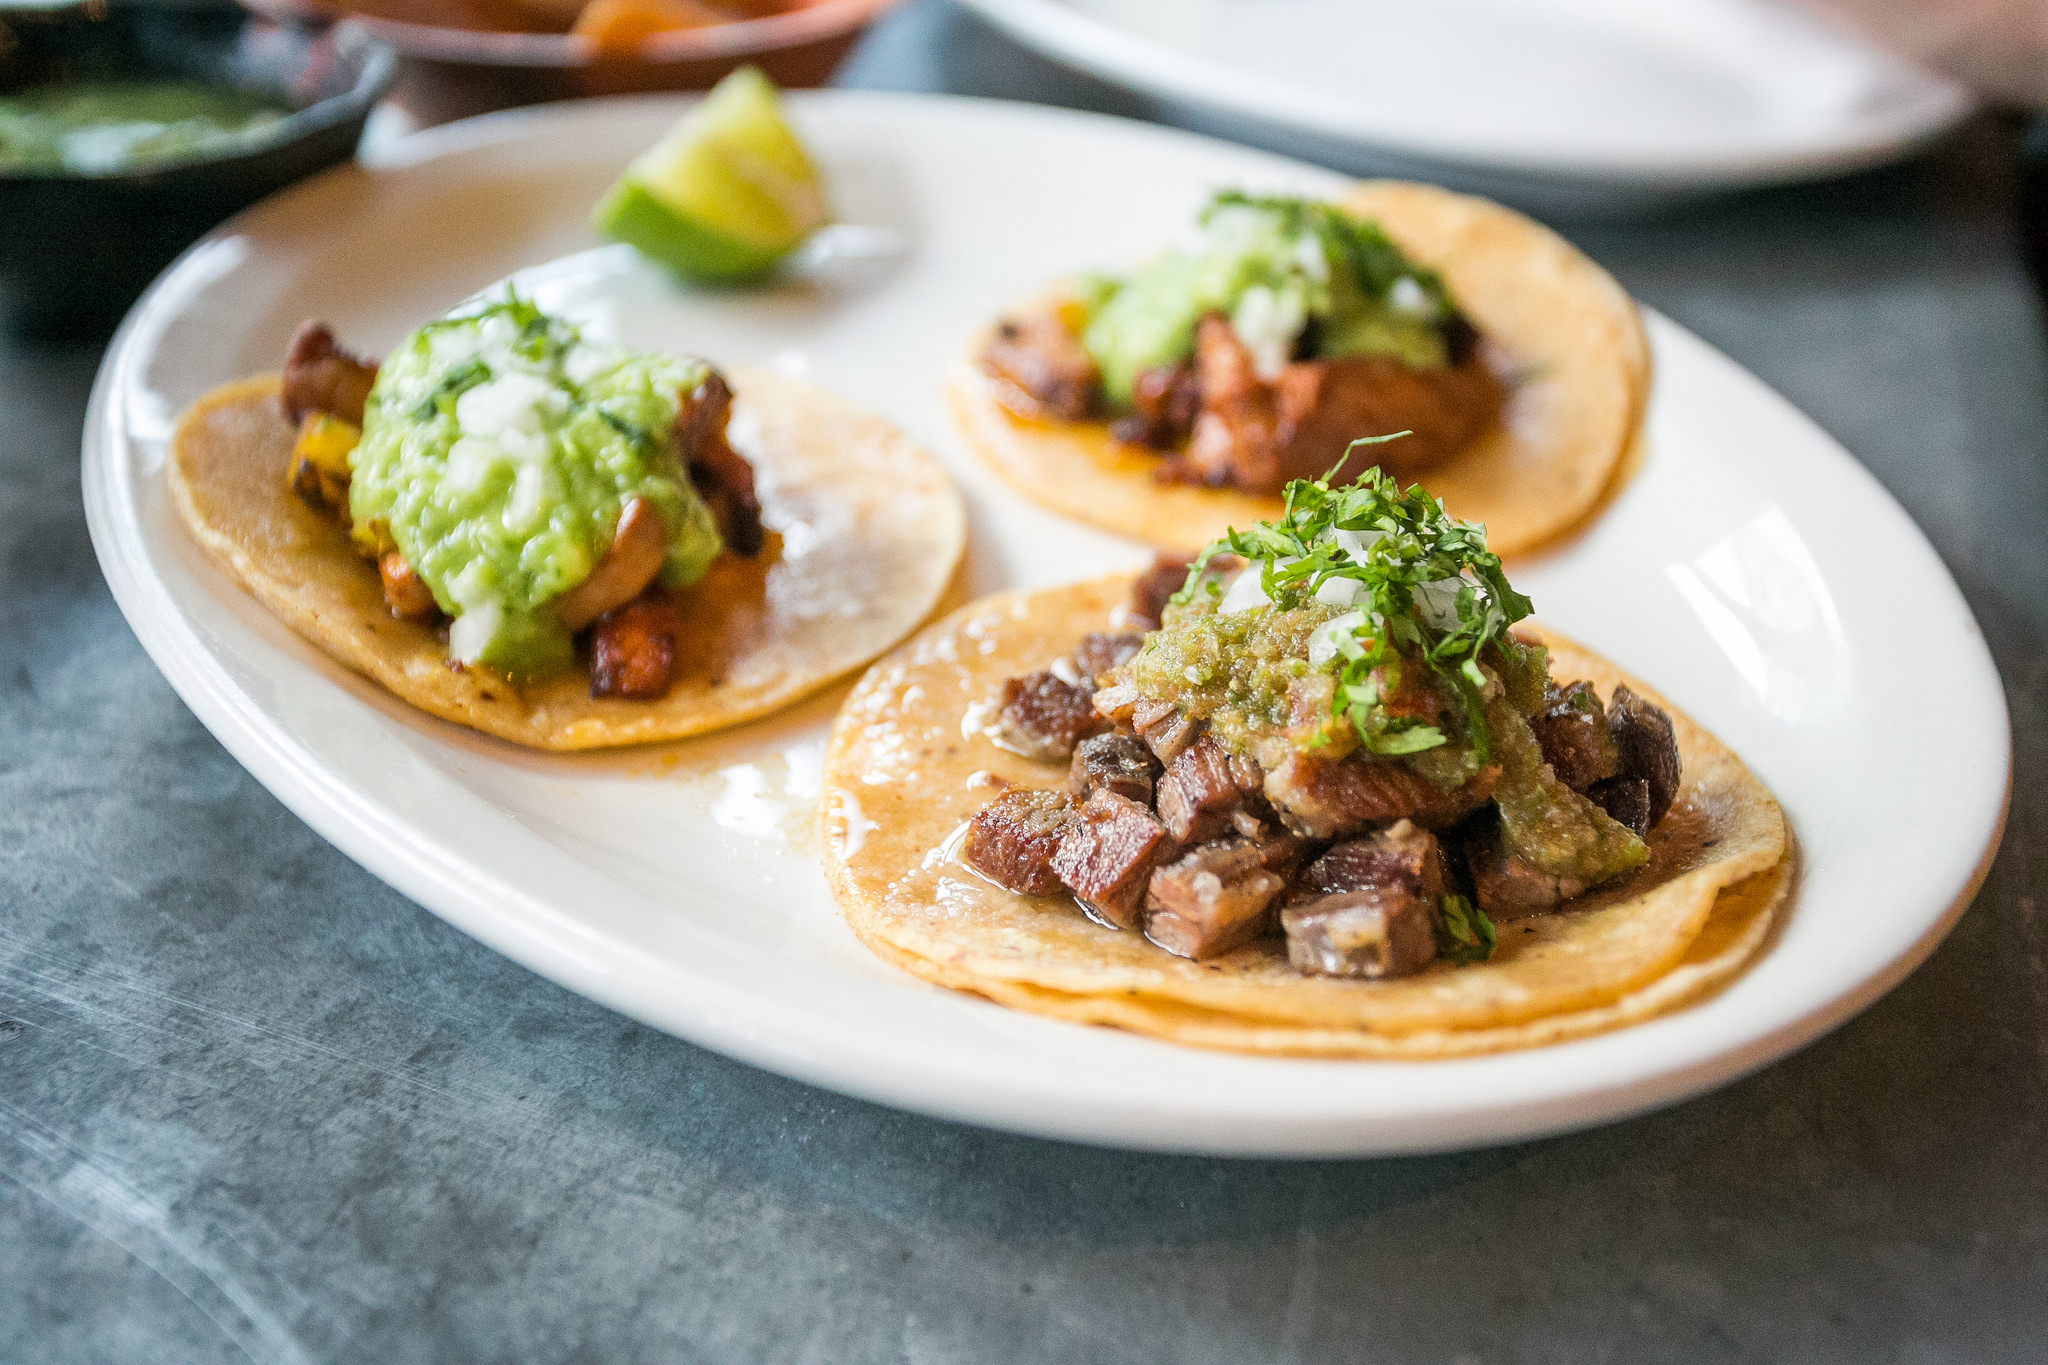 Tacos de barbacoa | © City Foodsters/Flickr